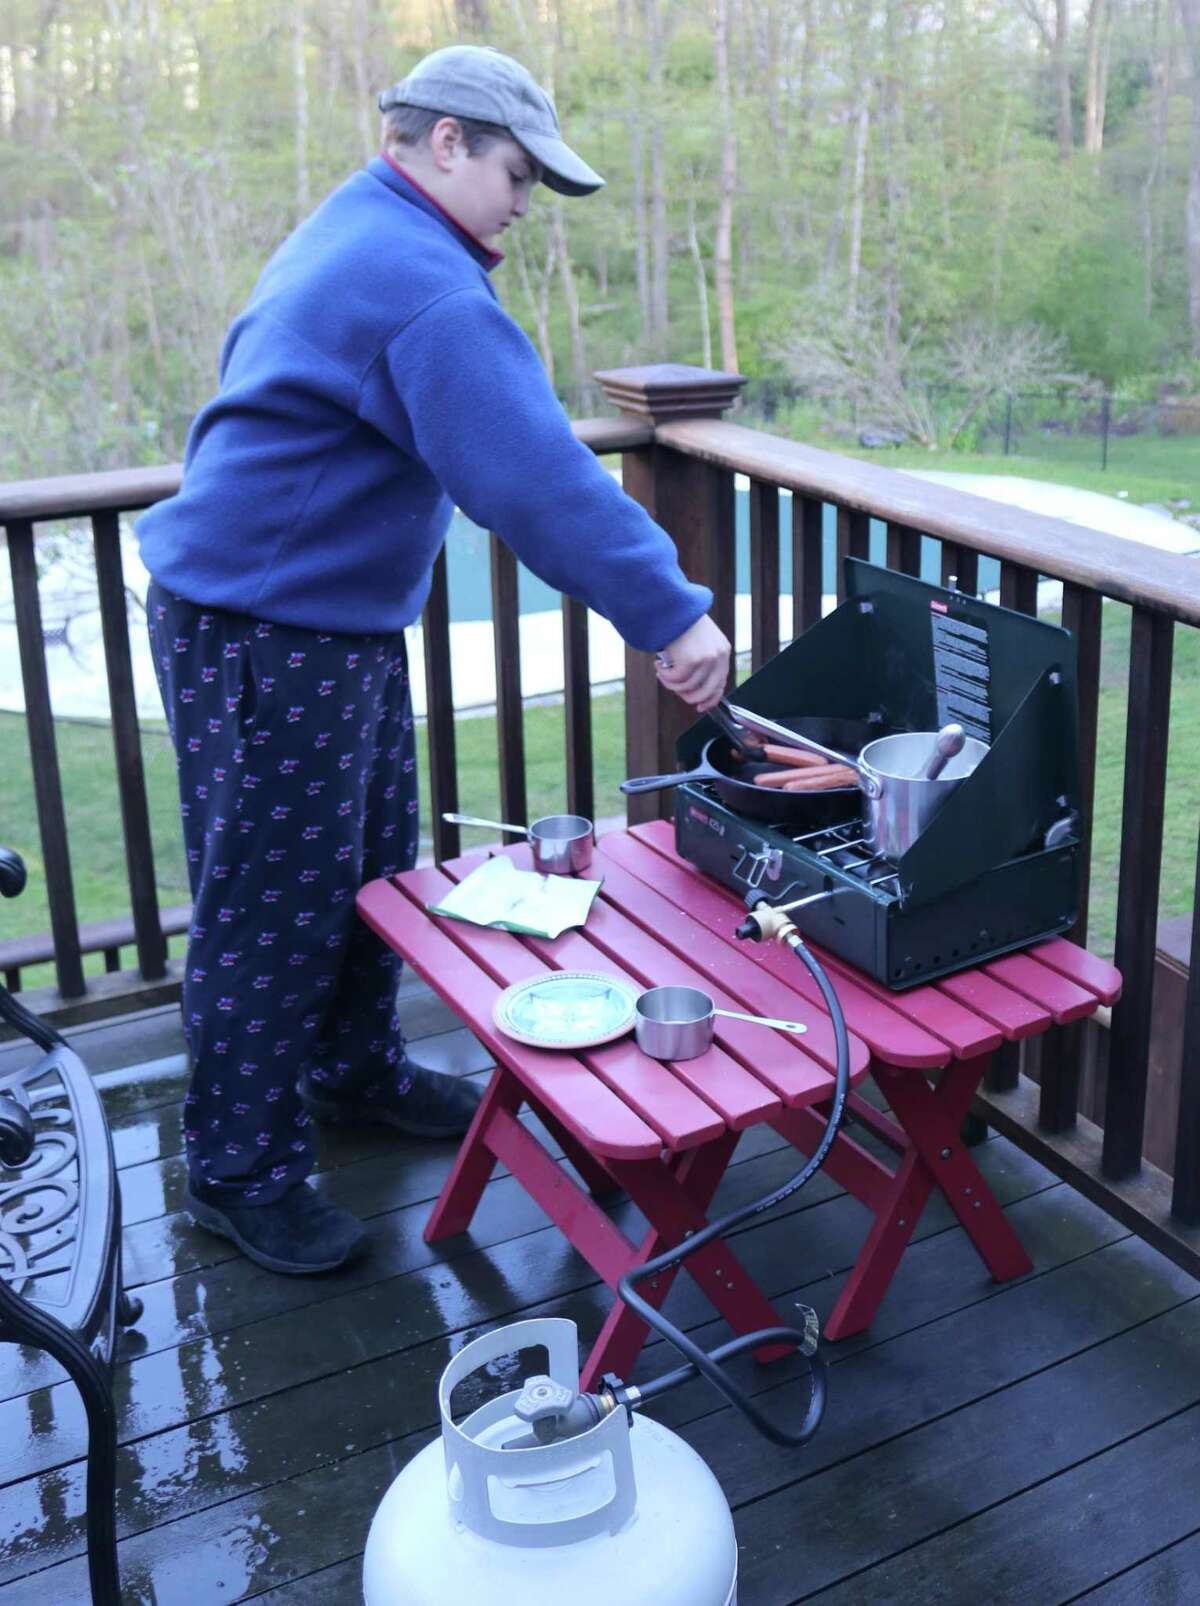 Outdoor cooking was among the skills Boy Scouts in New Canaan Boy Scout Troop 70 honed when they held a virtual campout recently amid the coronavirus pandemic. They also came together online to share their experiences.